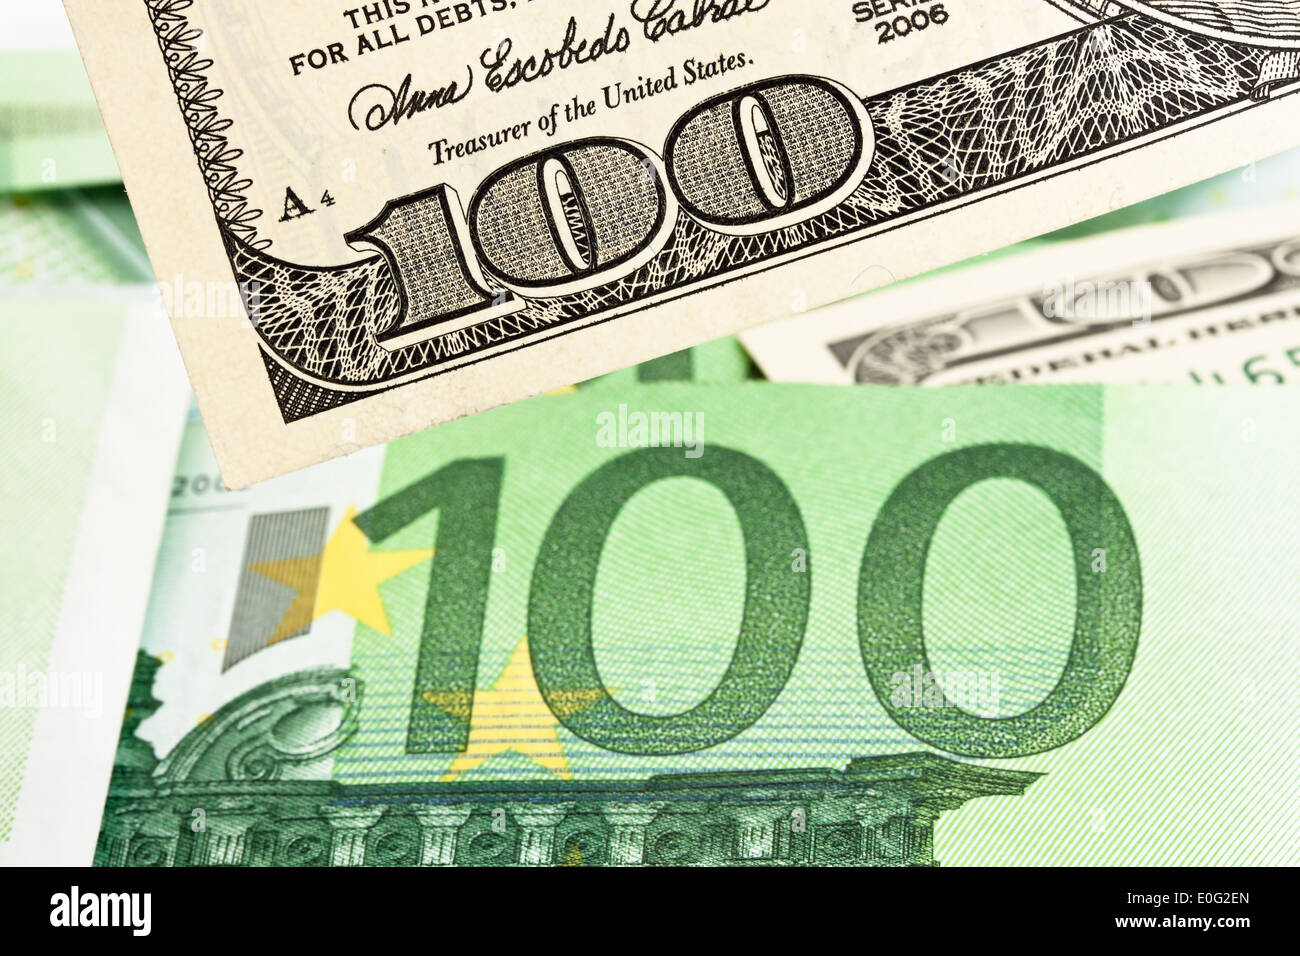 Dollar Stock Symbol Image Collections Meaning Of Text Symbols